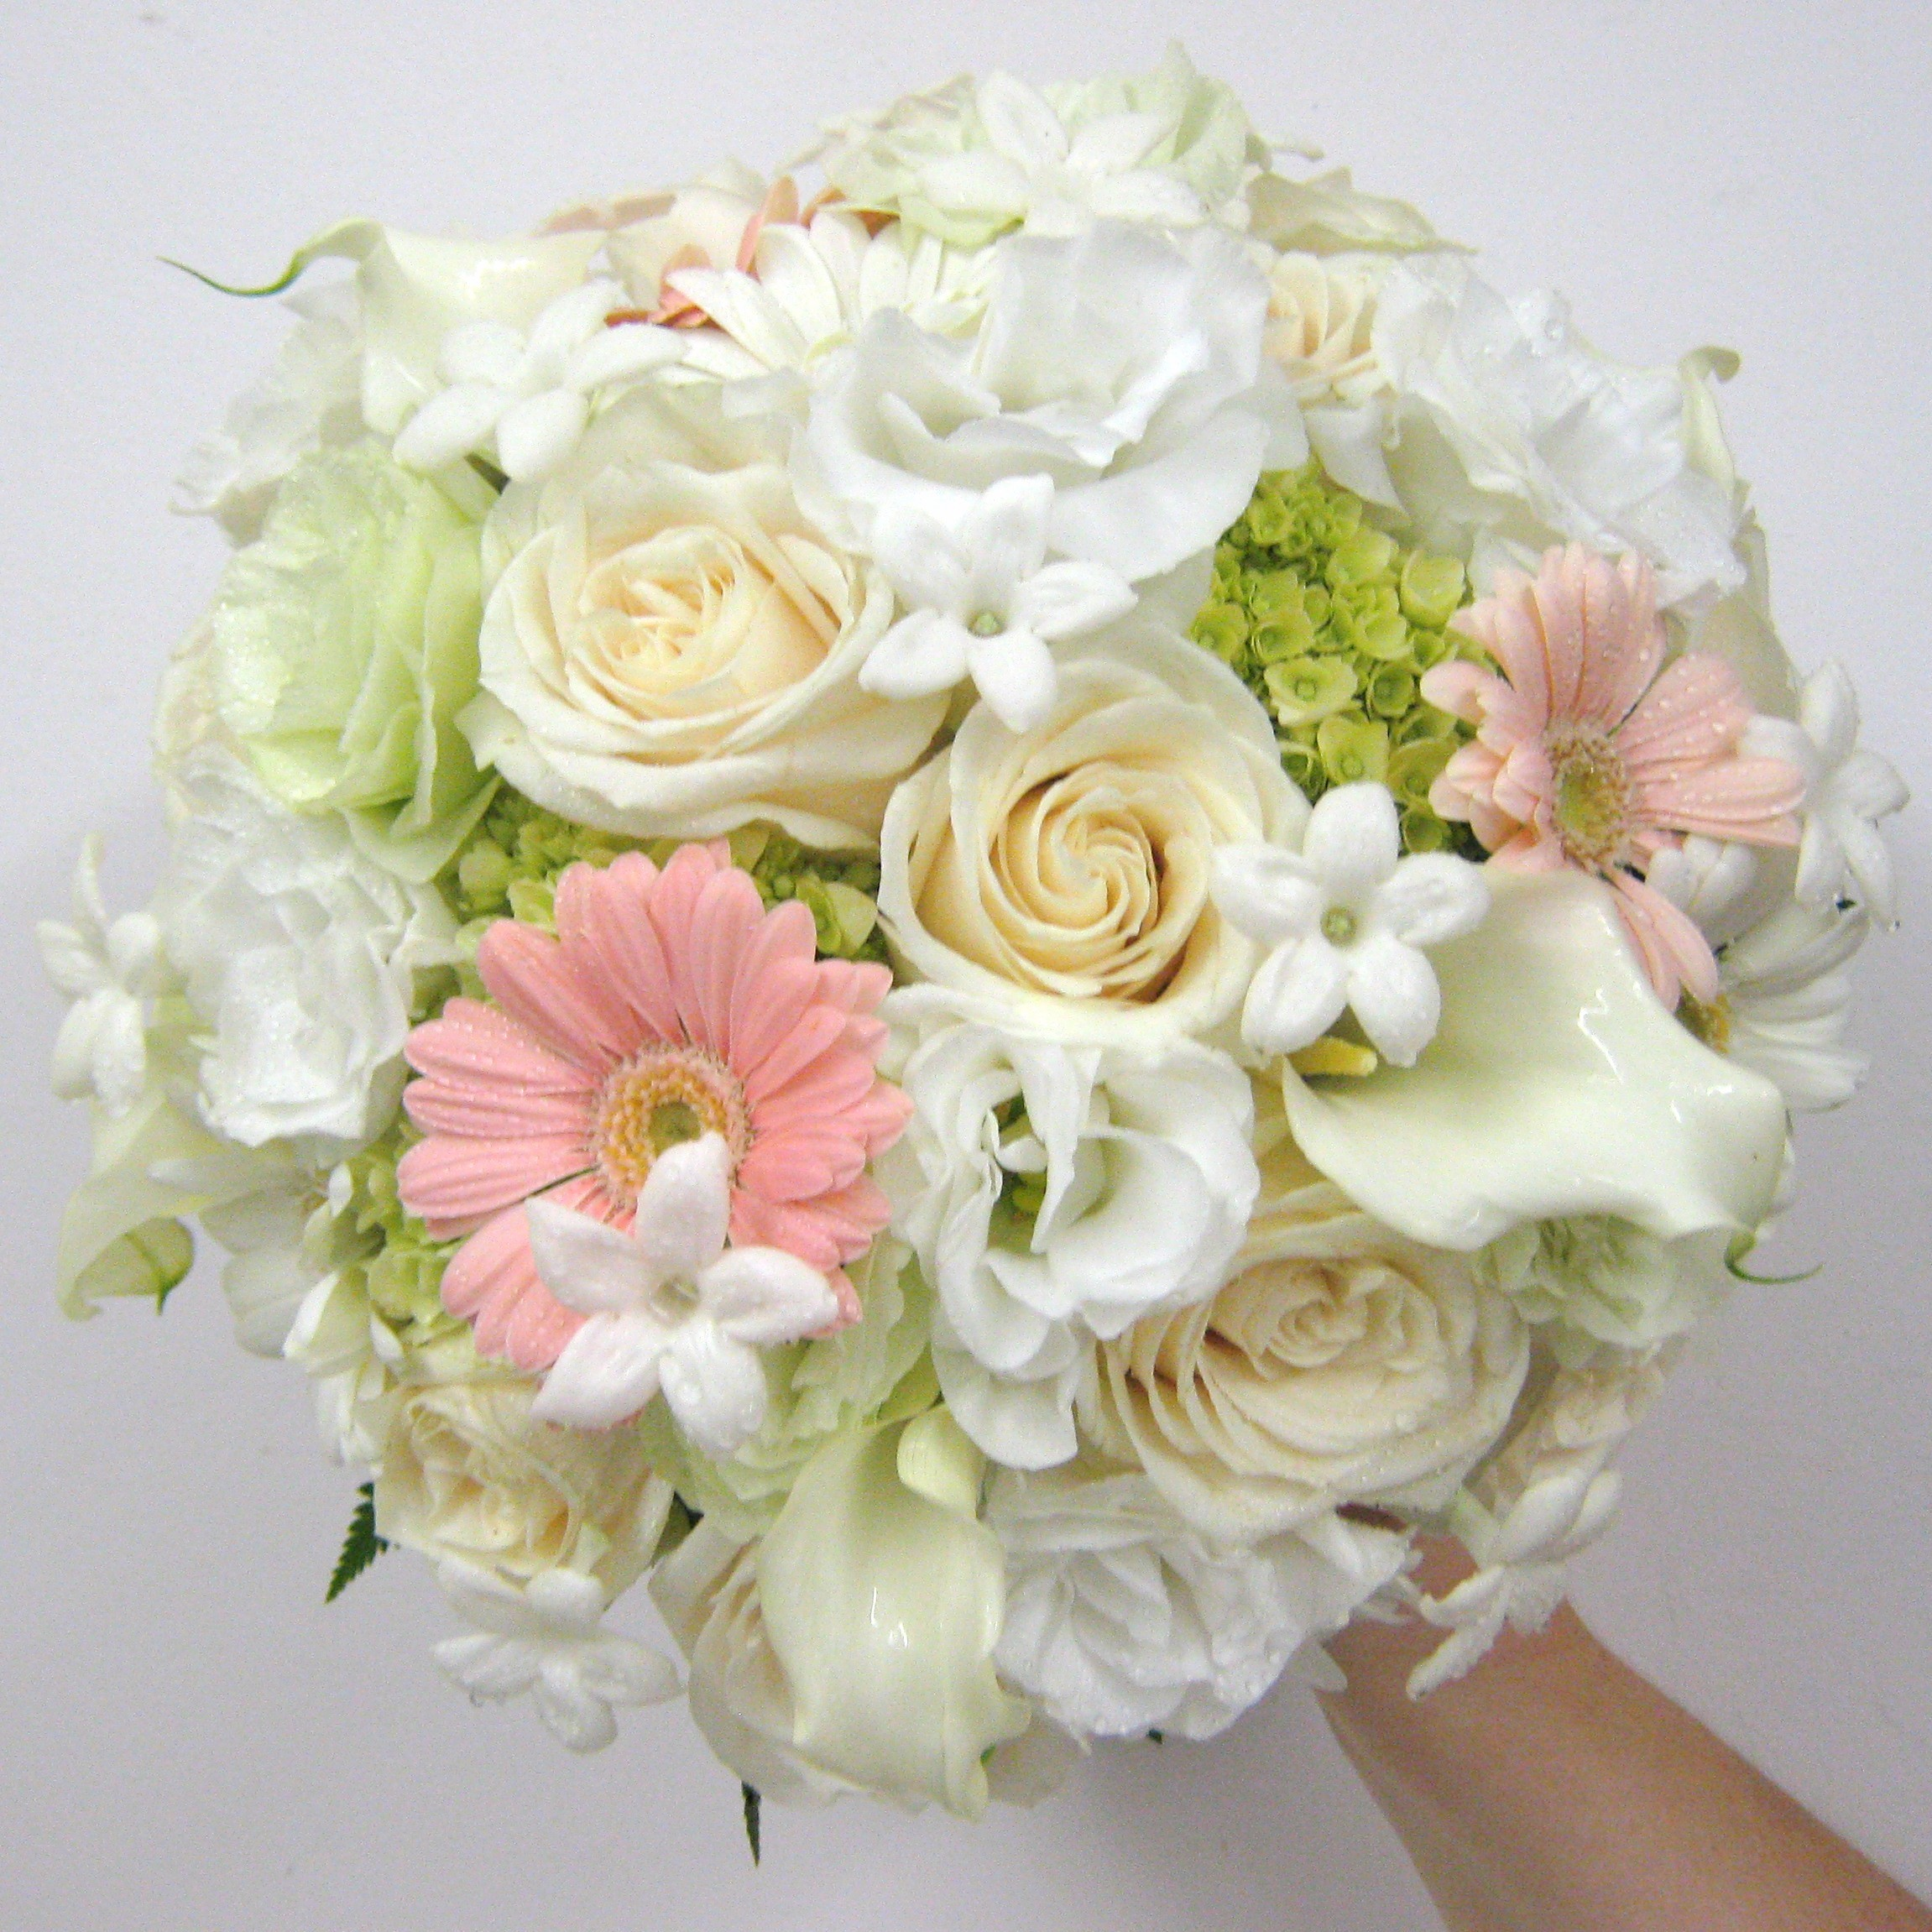 Bridal showers buffalo wedding event flowers by for Best flowers for wedding bouquet